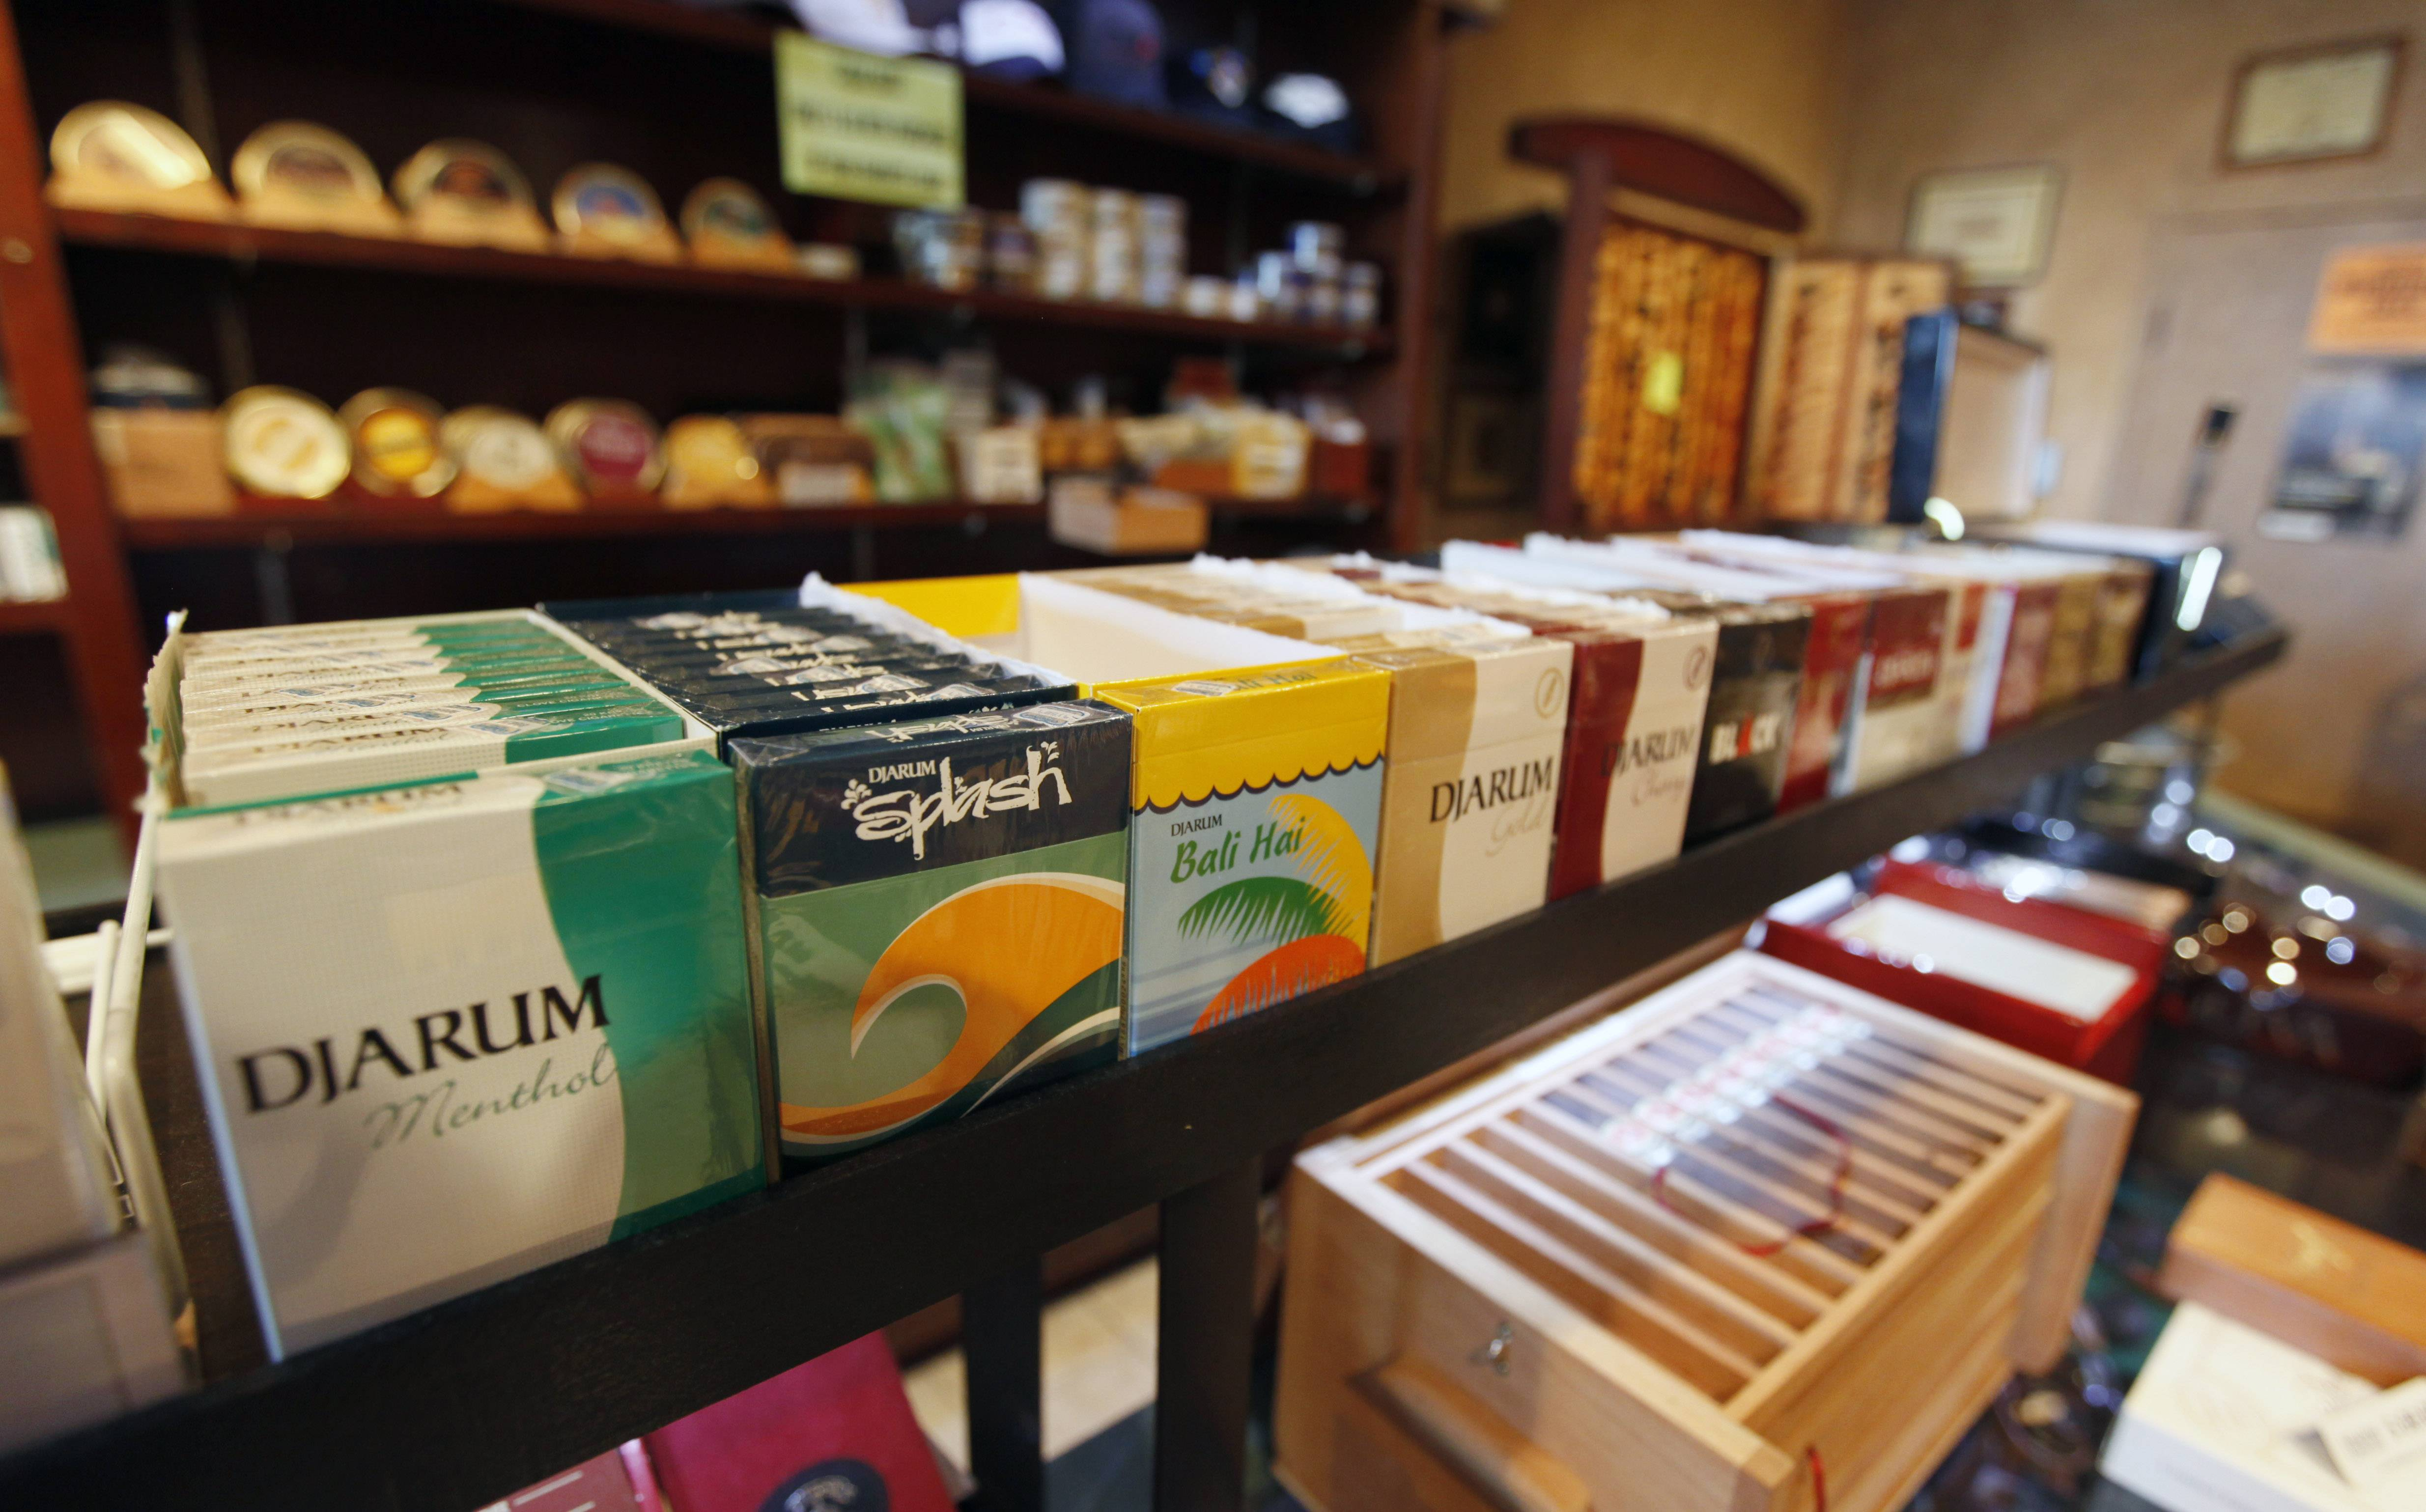 Buffalo Grove village officials this week voted to raise the minimum age for the sale and purchase of tobacco products and e-cigarettes from 18 to 21, amid disagreement among trustees over whether the change would be effective.